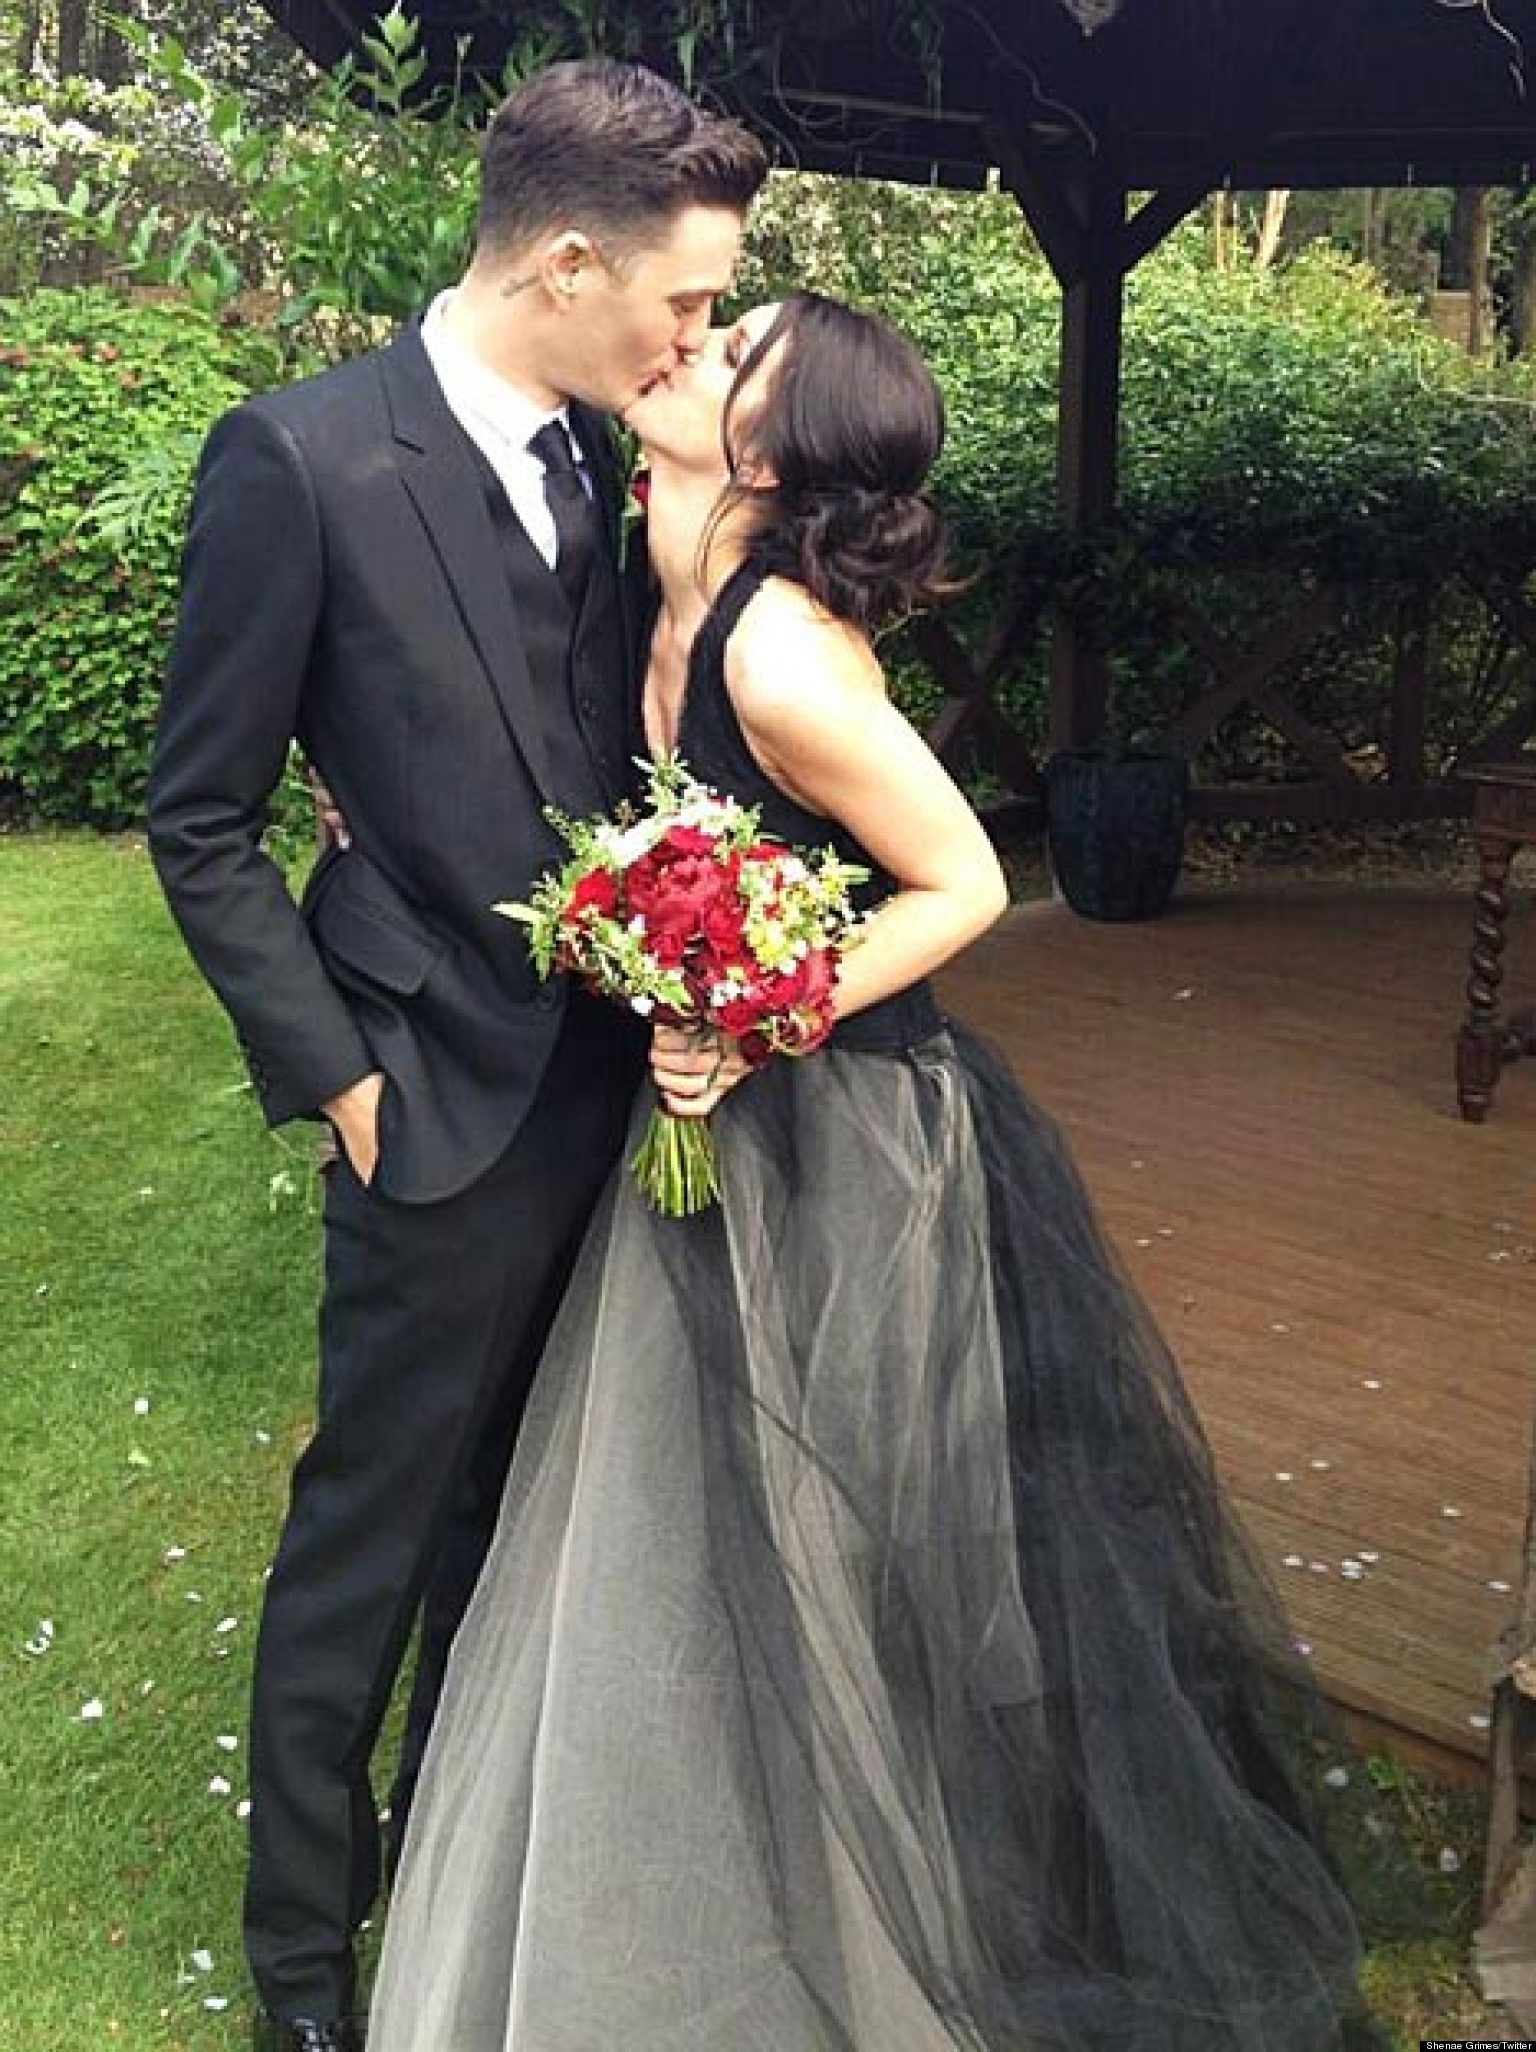 Shenae Grimes Married Actress Wears Black As She Ties The